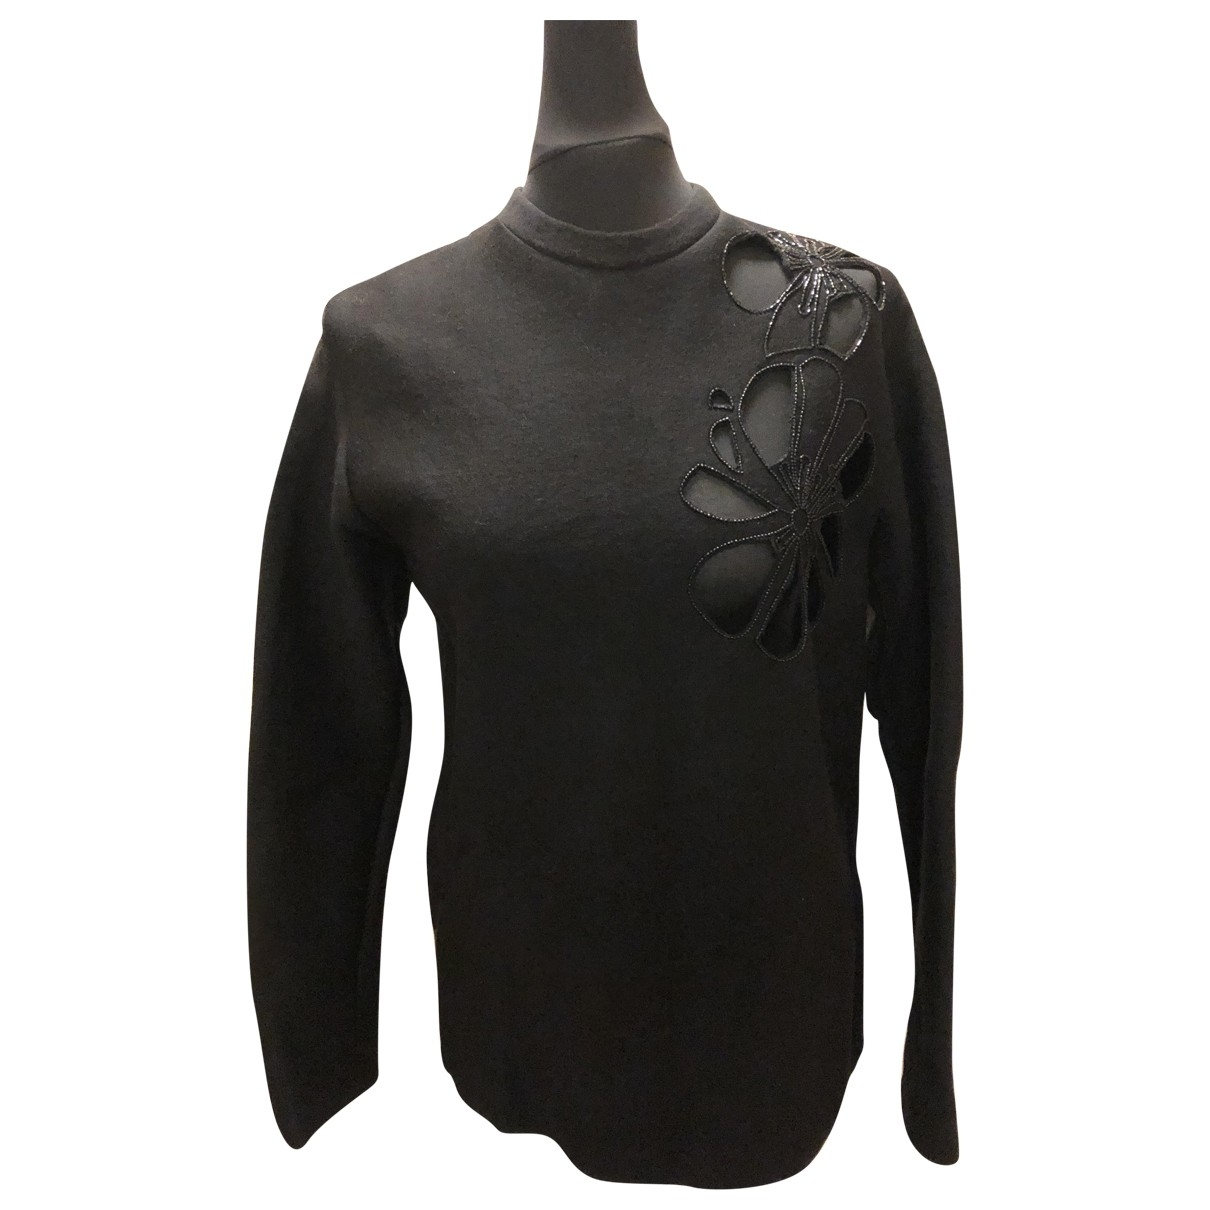 Marni \N Pullover in  Schwarz Wolle